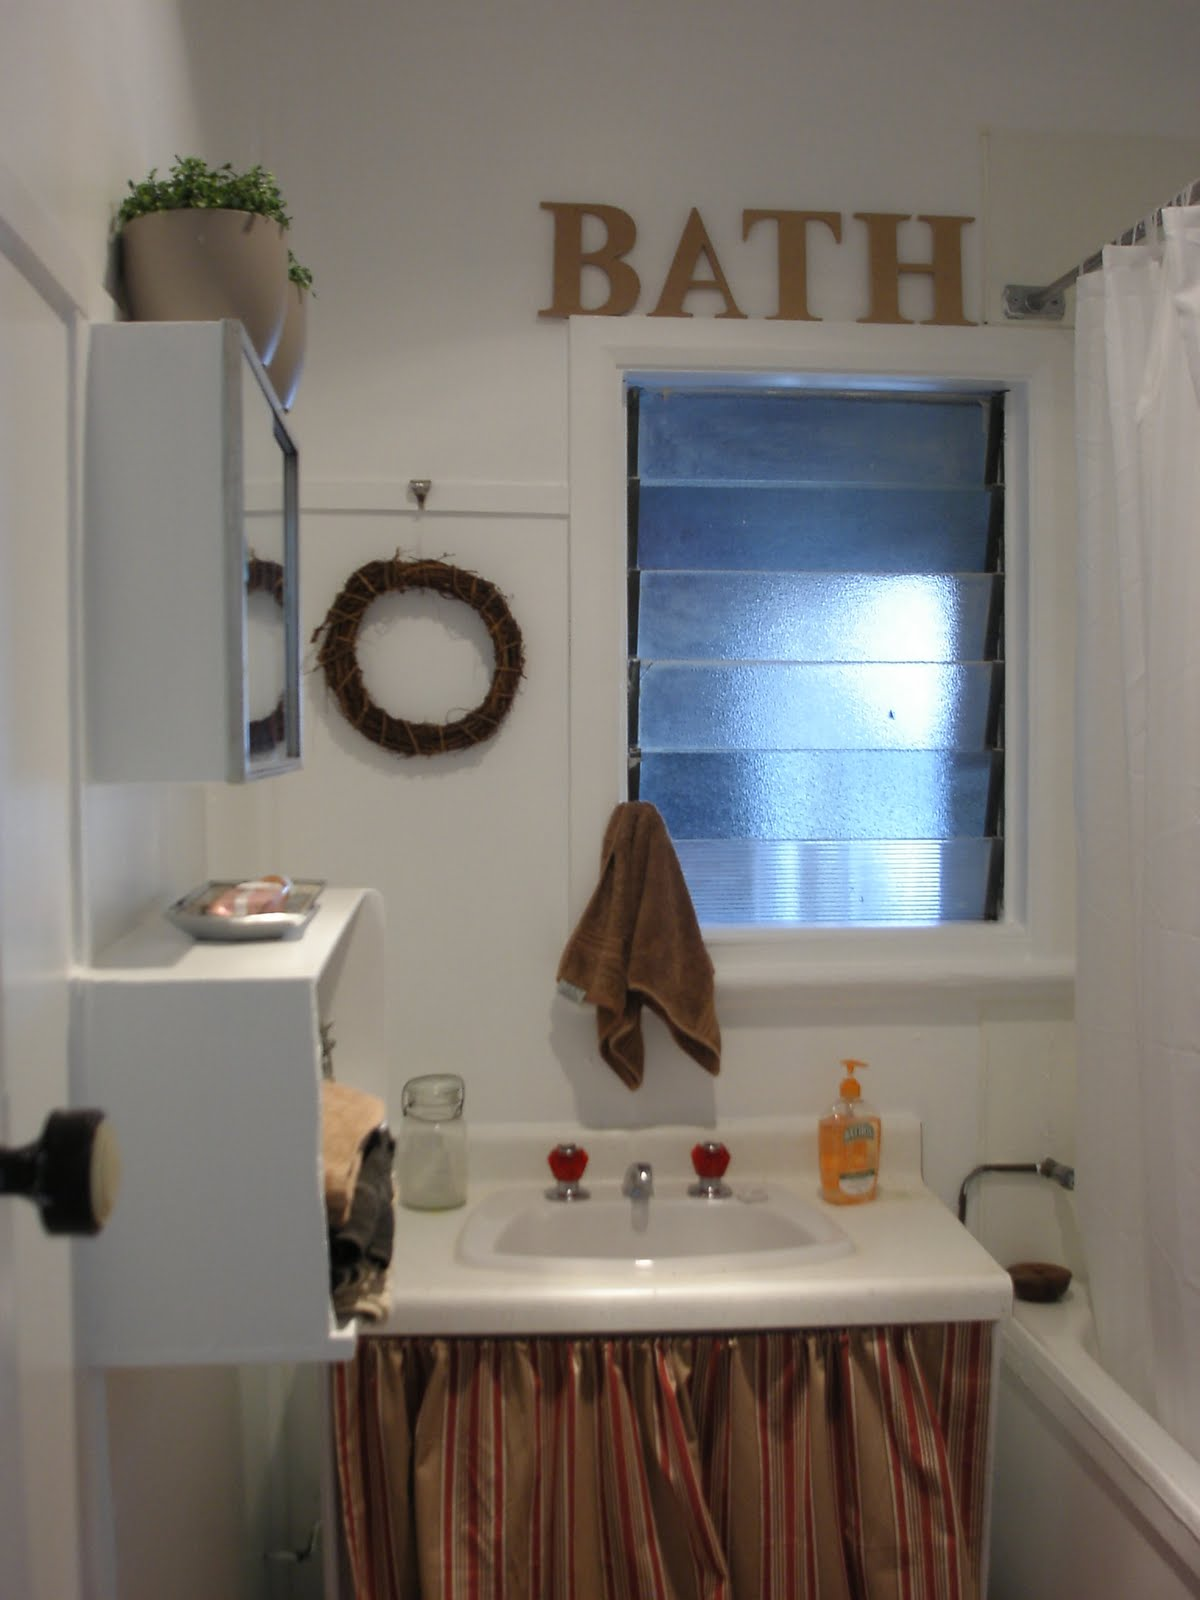 thom haus handmade a low cost bathroom makeover